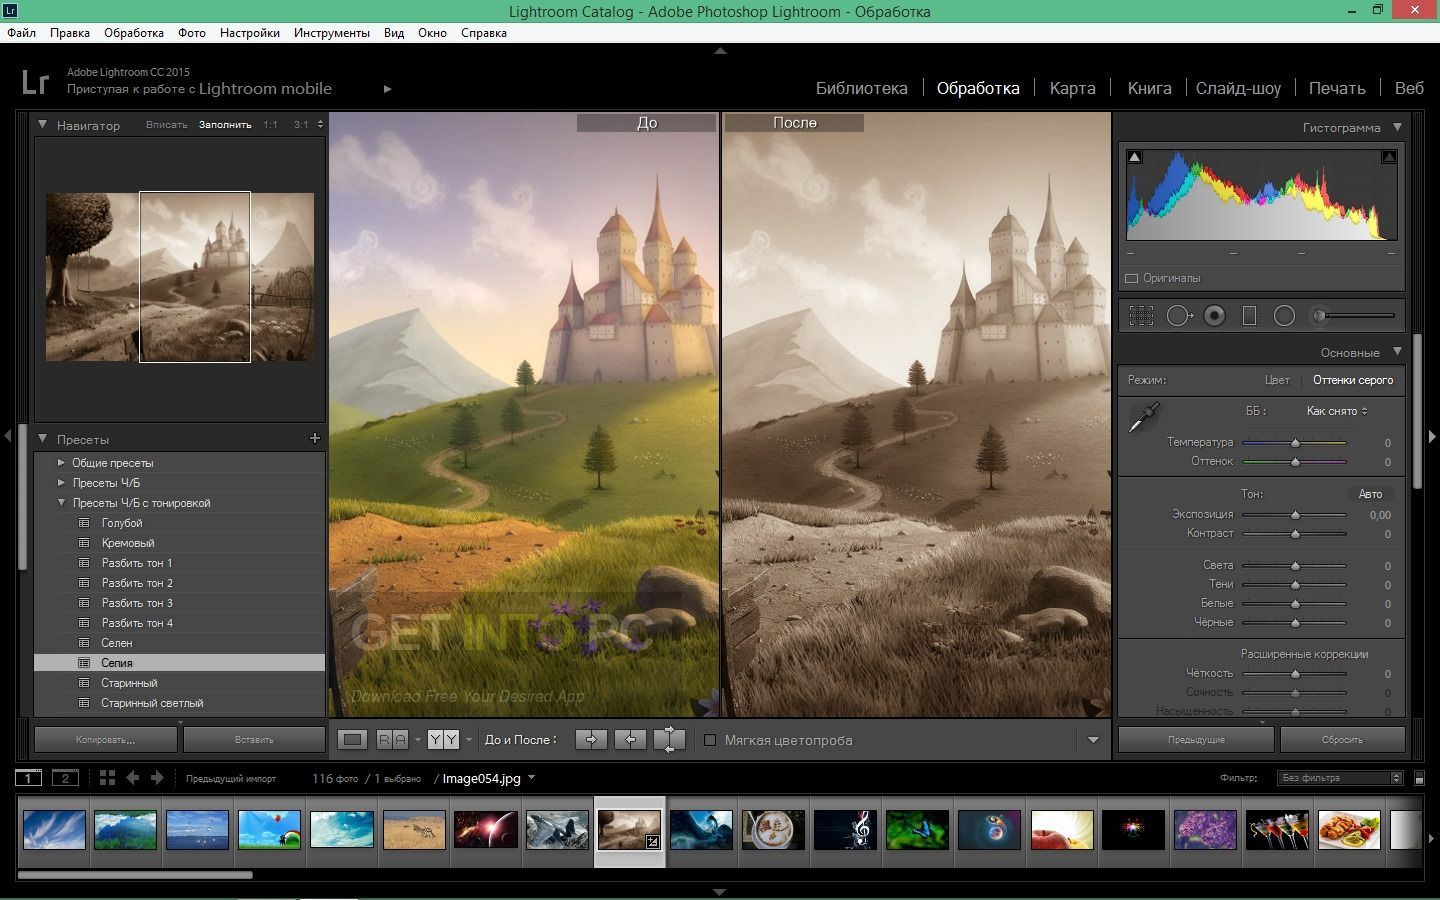 adobe photoshop cc software free download full version for windows 7